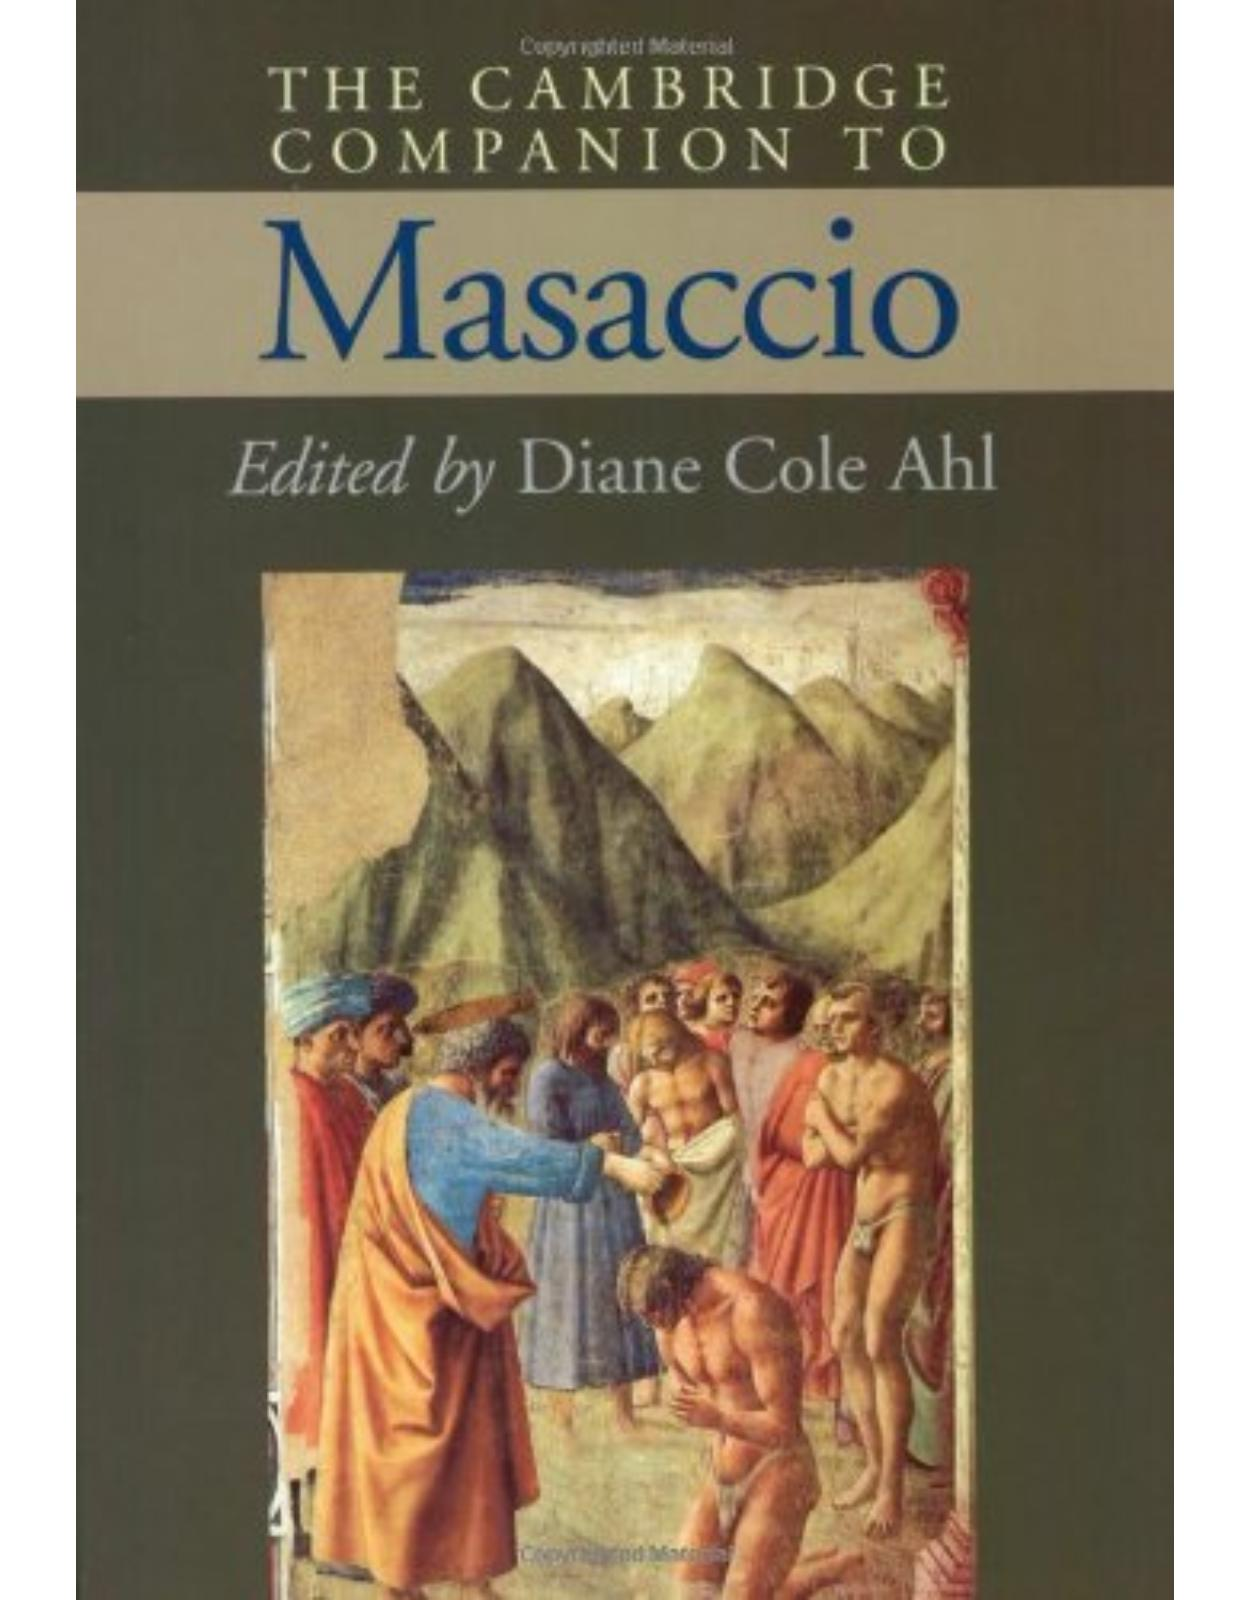 The Cambridge Companion to Masaccio (Cambridge Companions to the History of Art)